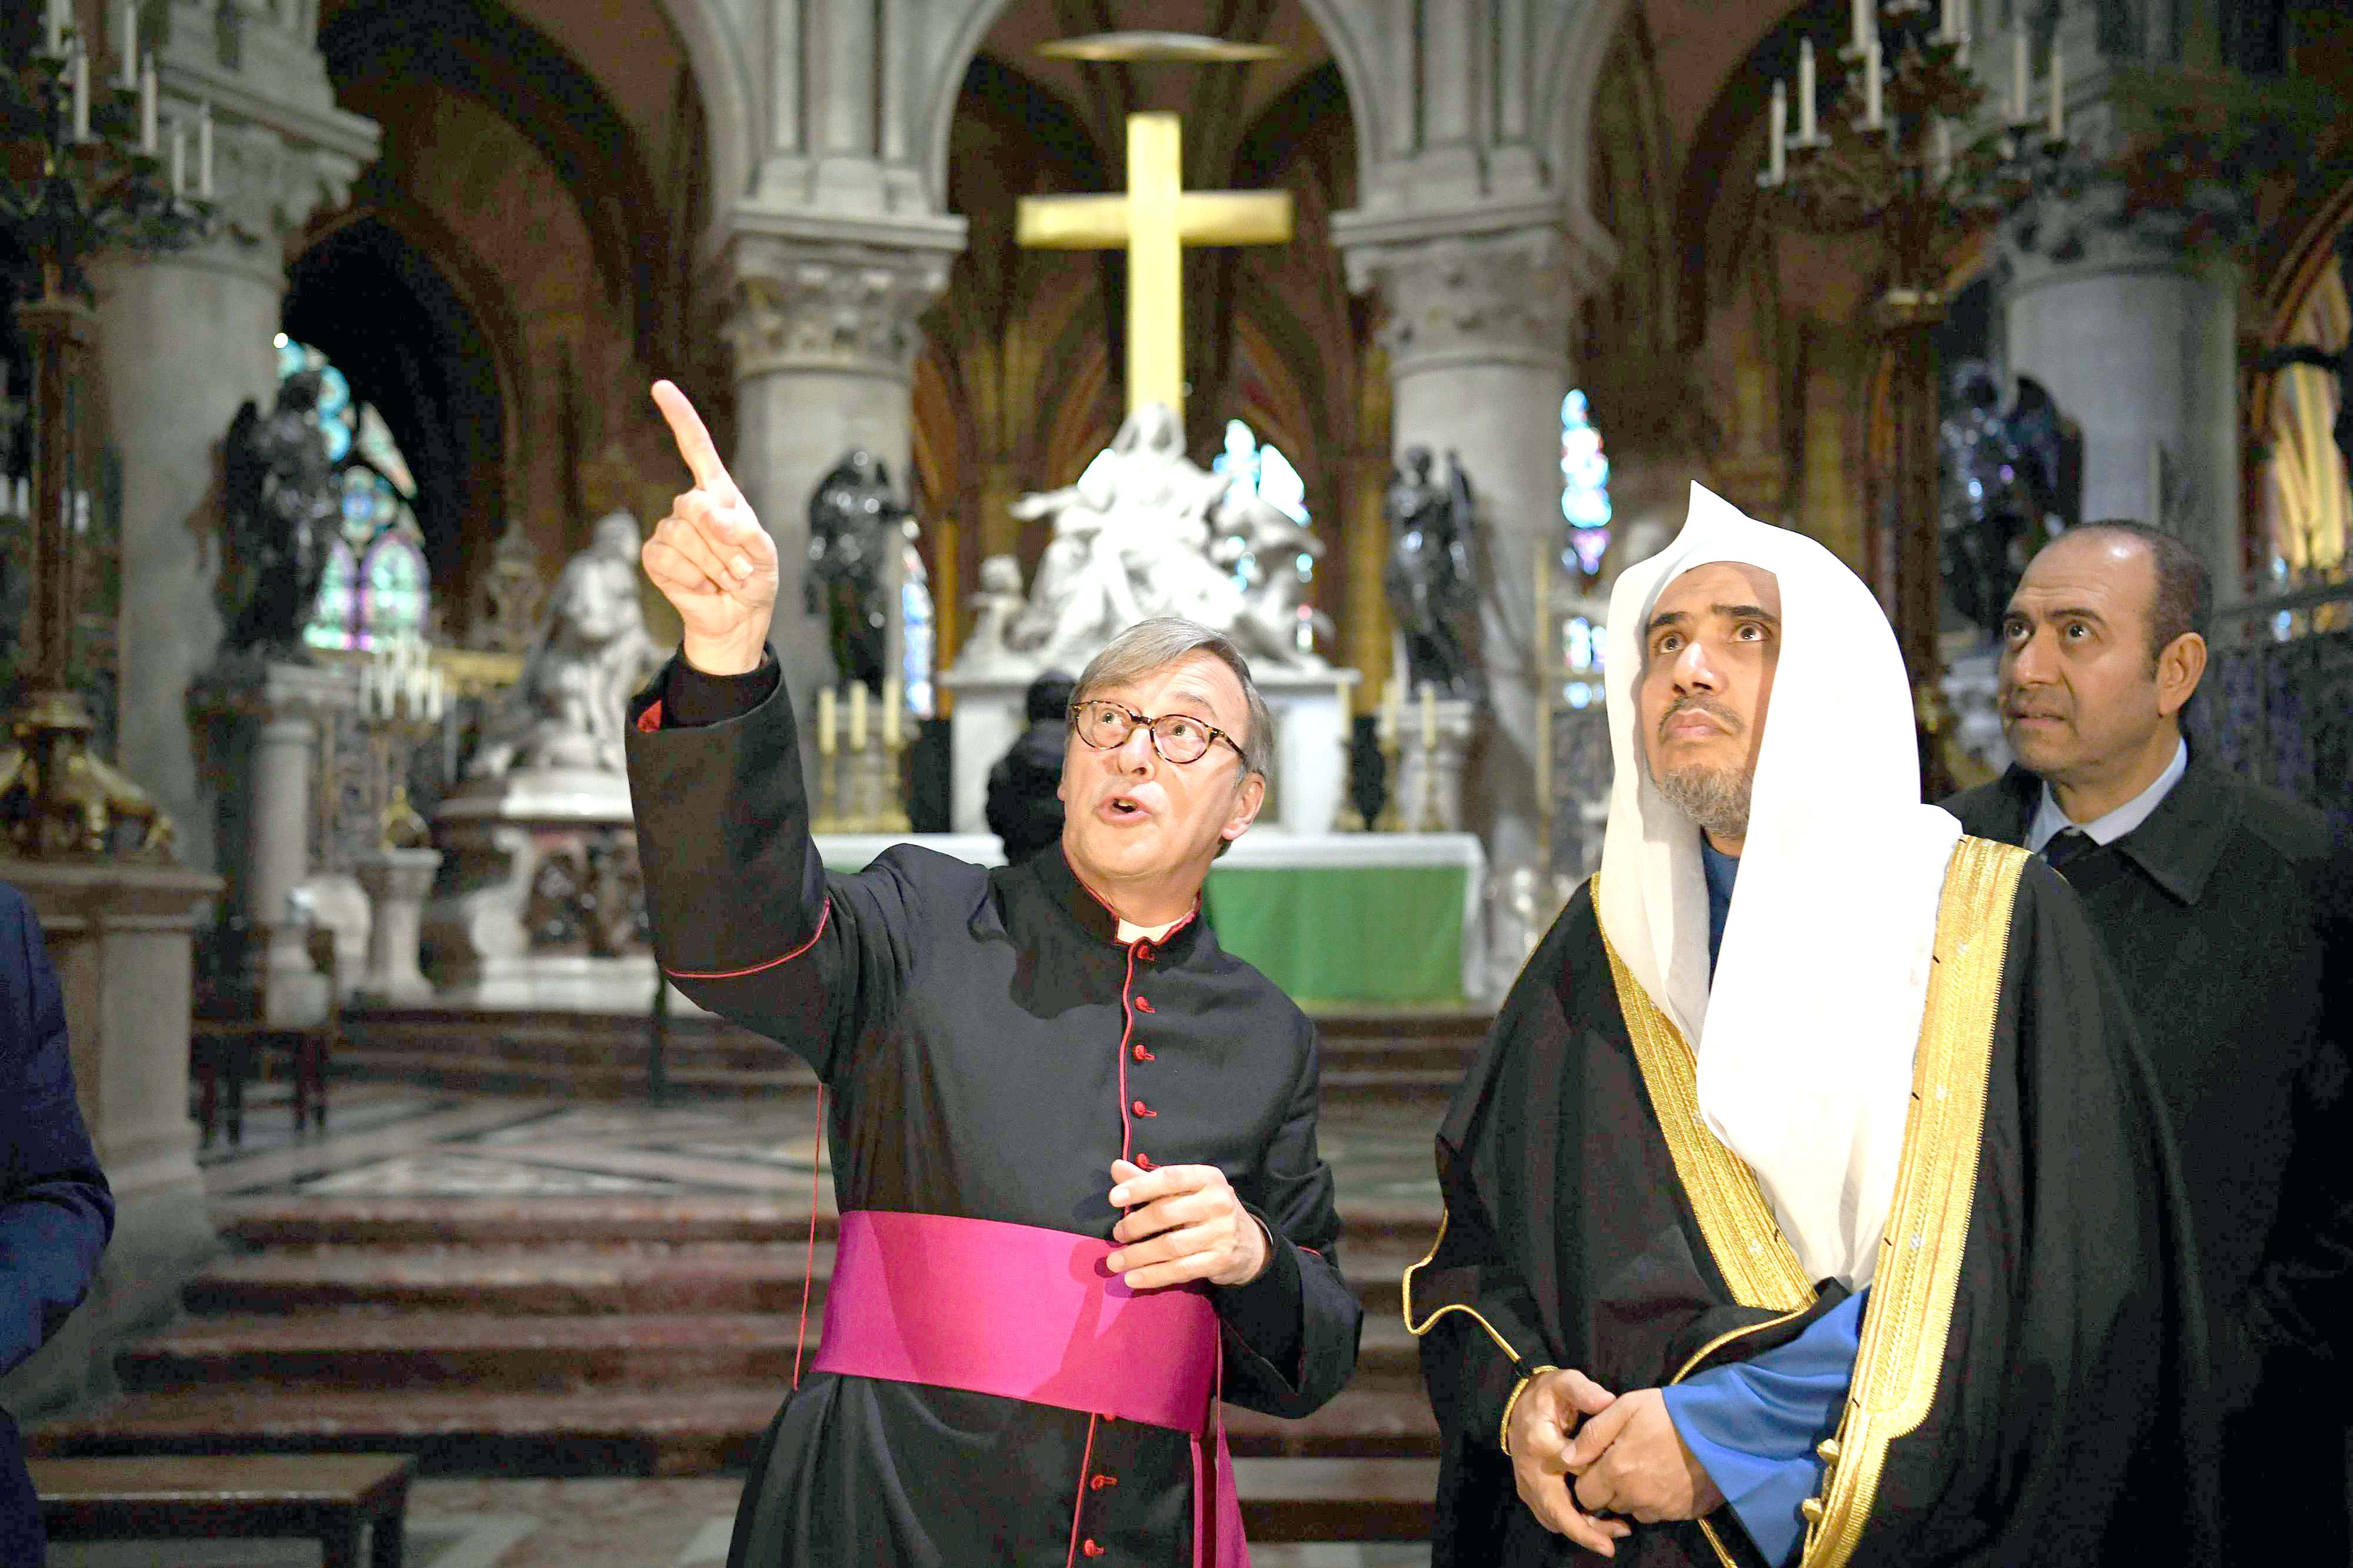 Muslim World League Secretary-General Mohammad bin Abdul Karim al-Issa (2nd R) listens to the Rector of the Notre-Dame de Paris Cathedral Patrick Chauvet (L) during a visit to the cathedral, last November.  (AFP)